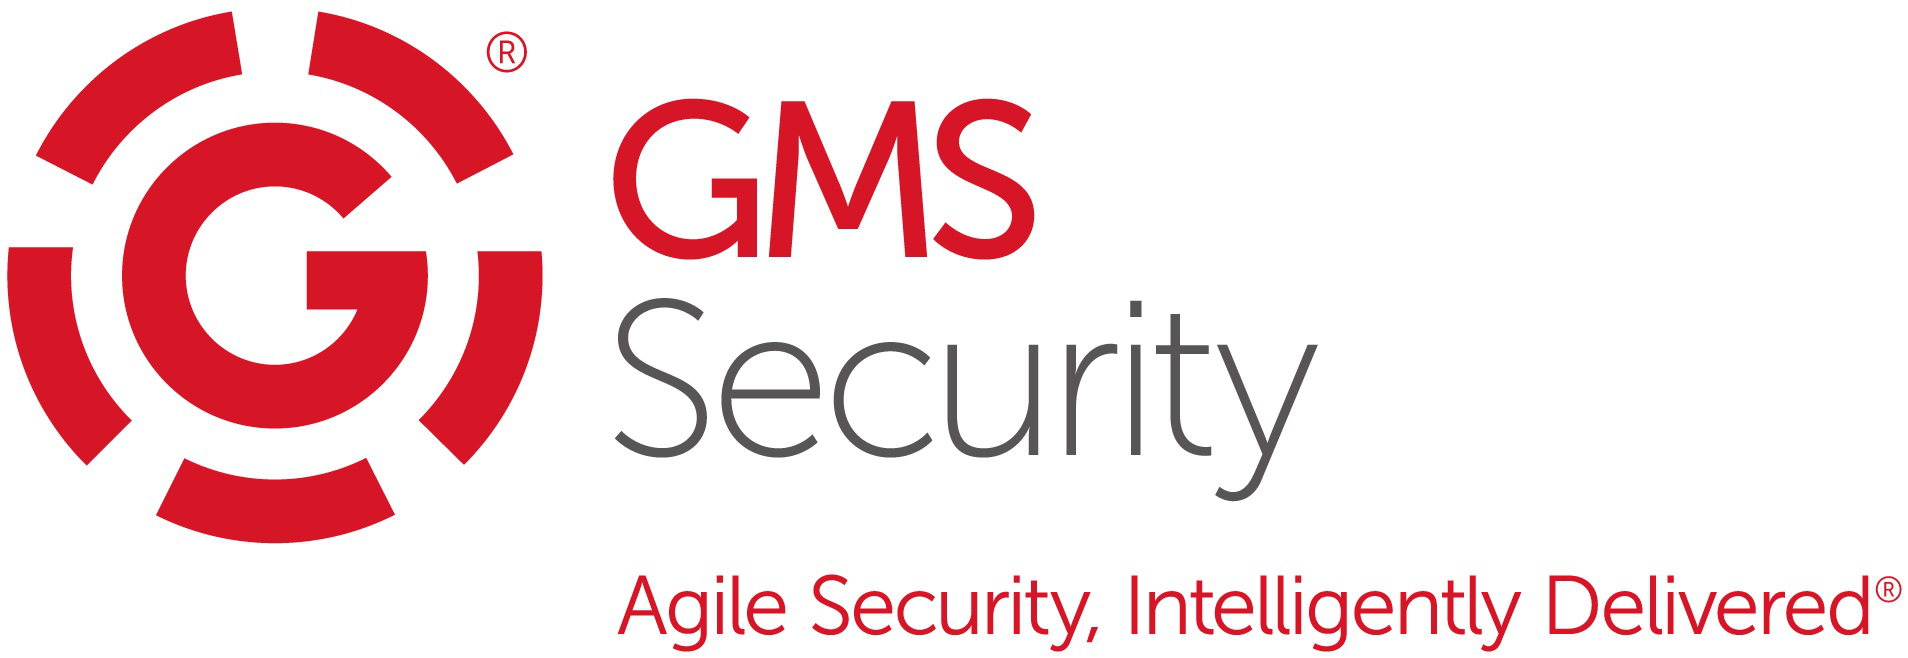 GMS Security Services Limited